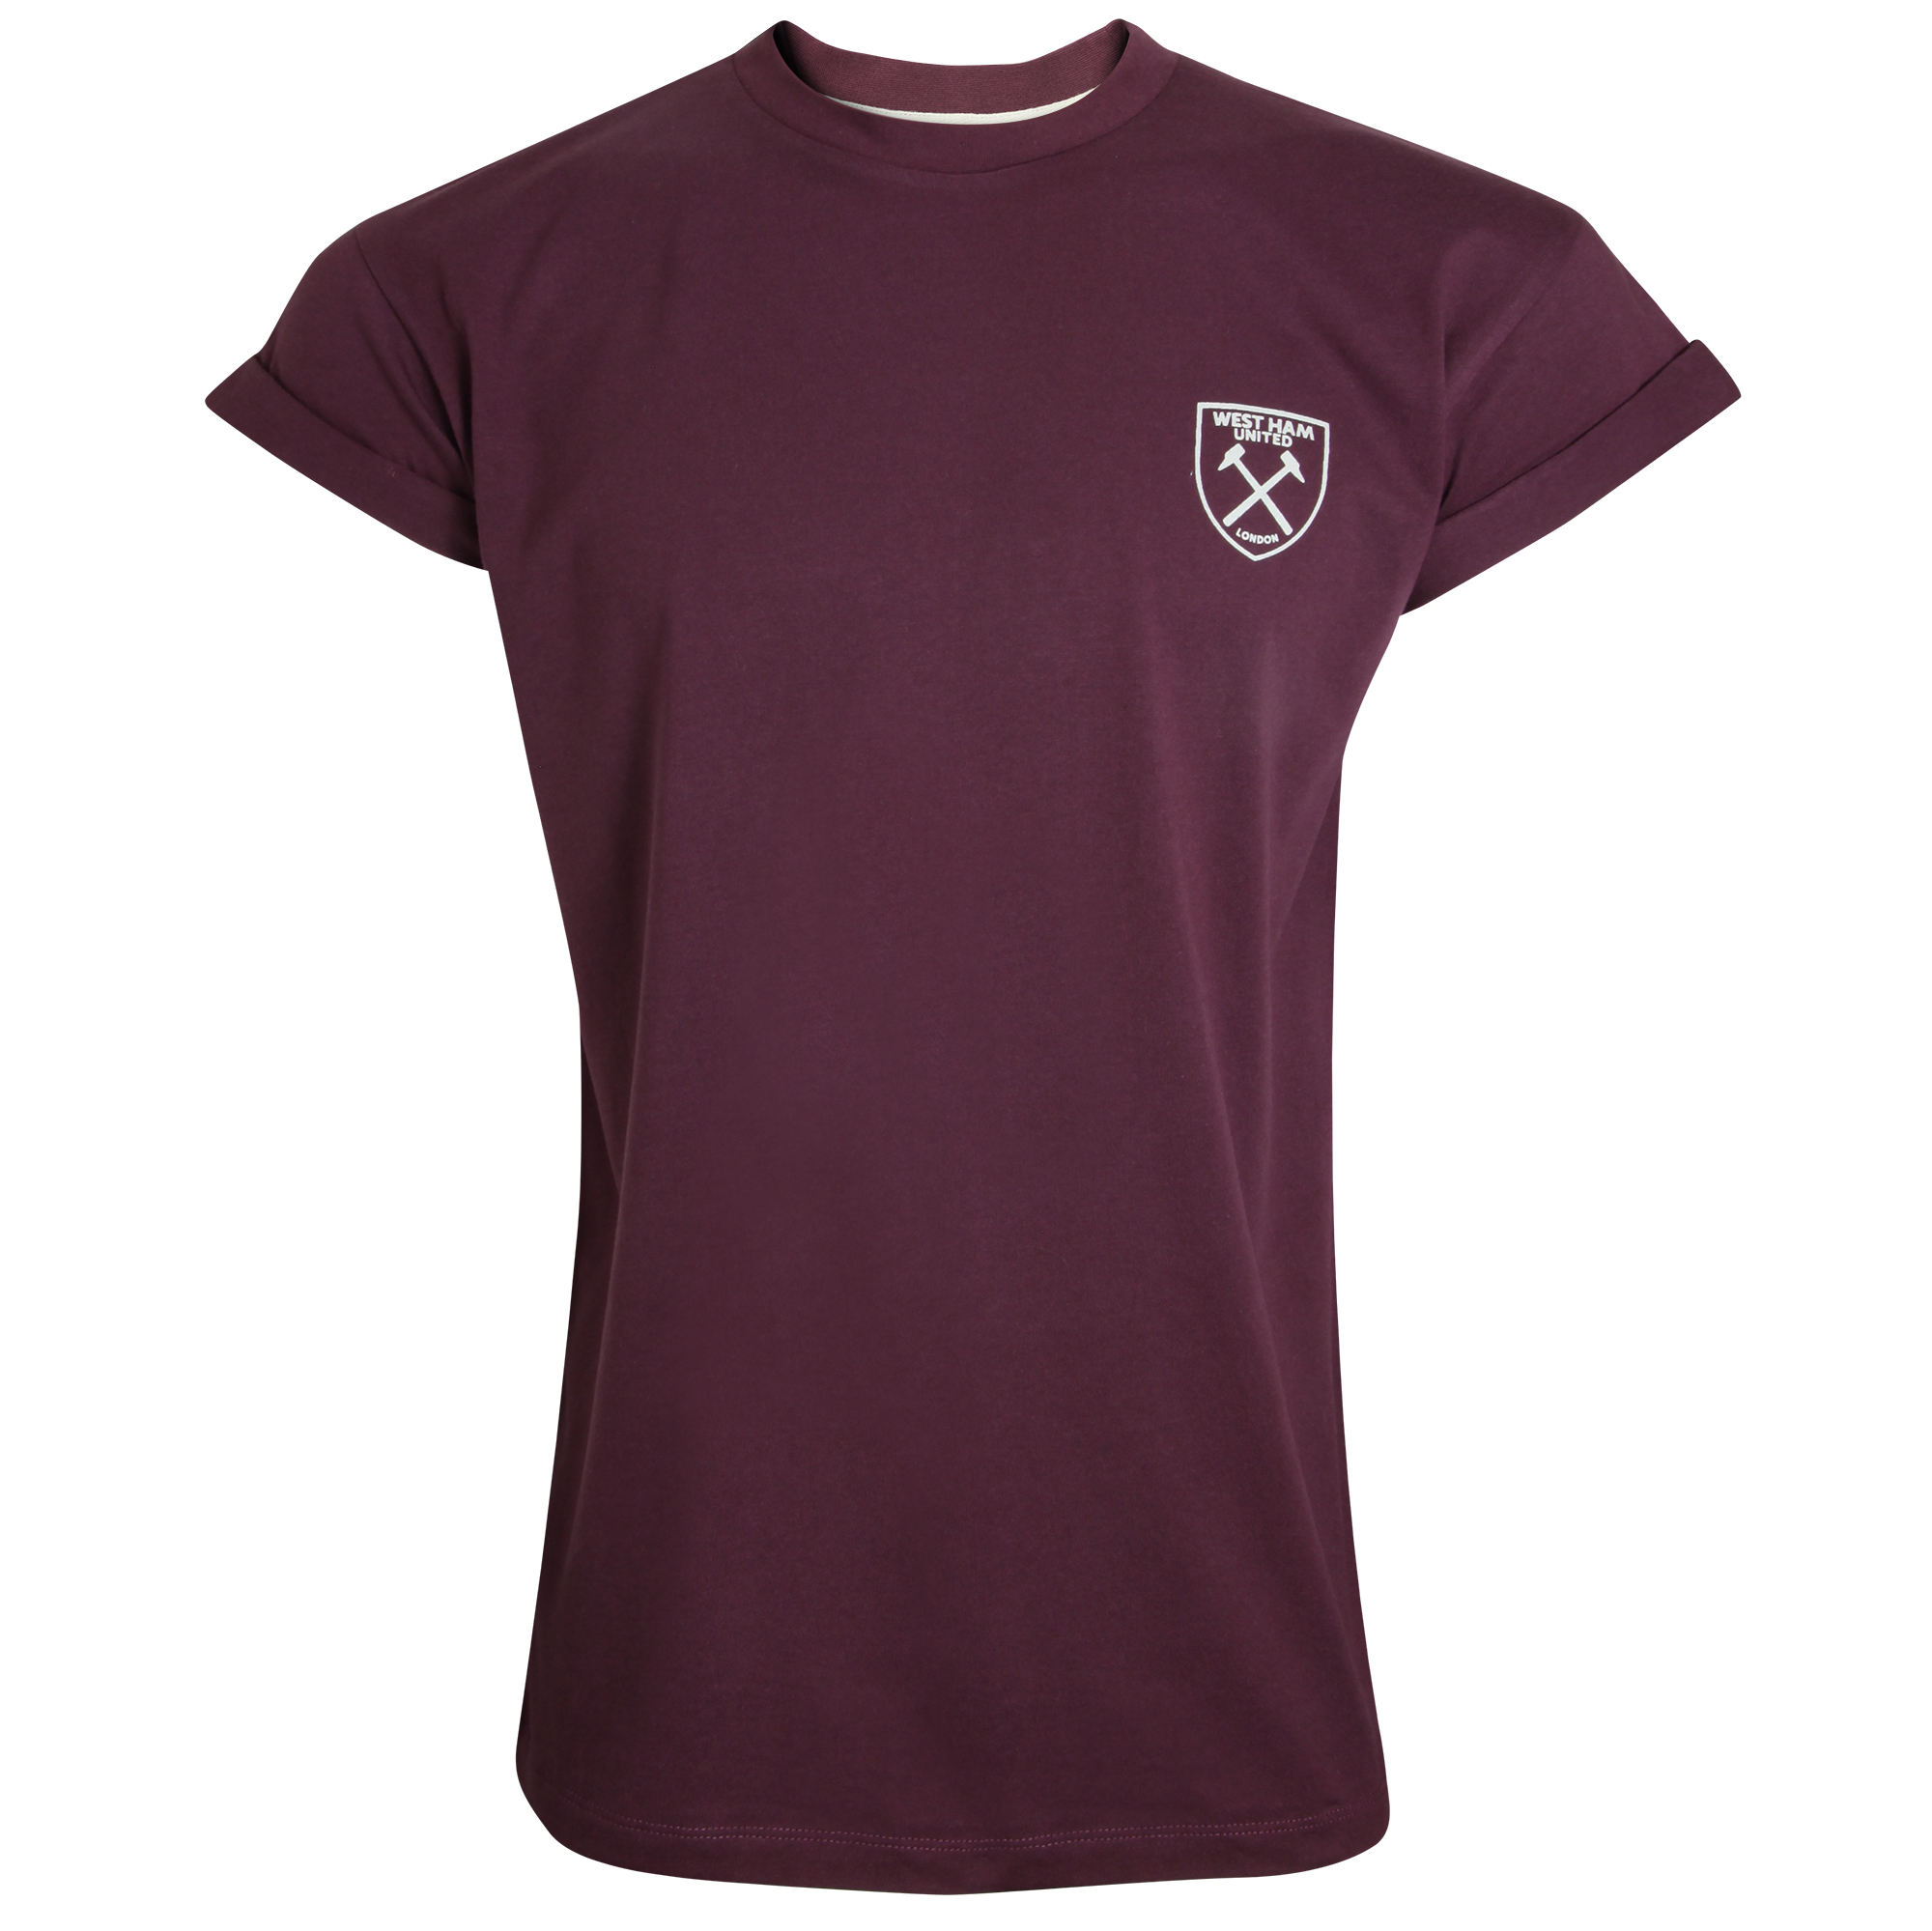 LADIES CLARET HAMMERS ROLL CUFF T-SHIRT